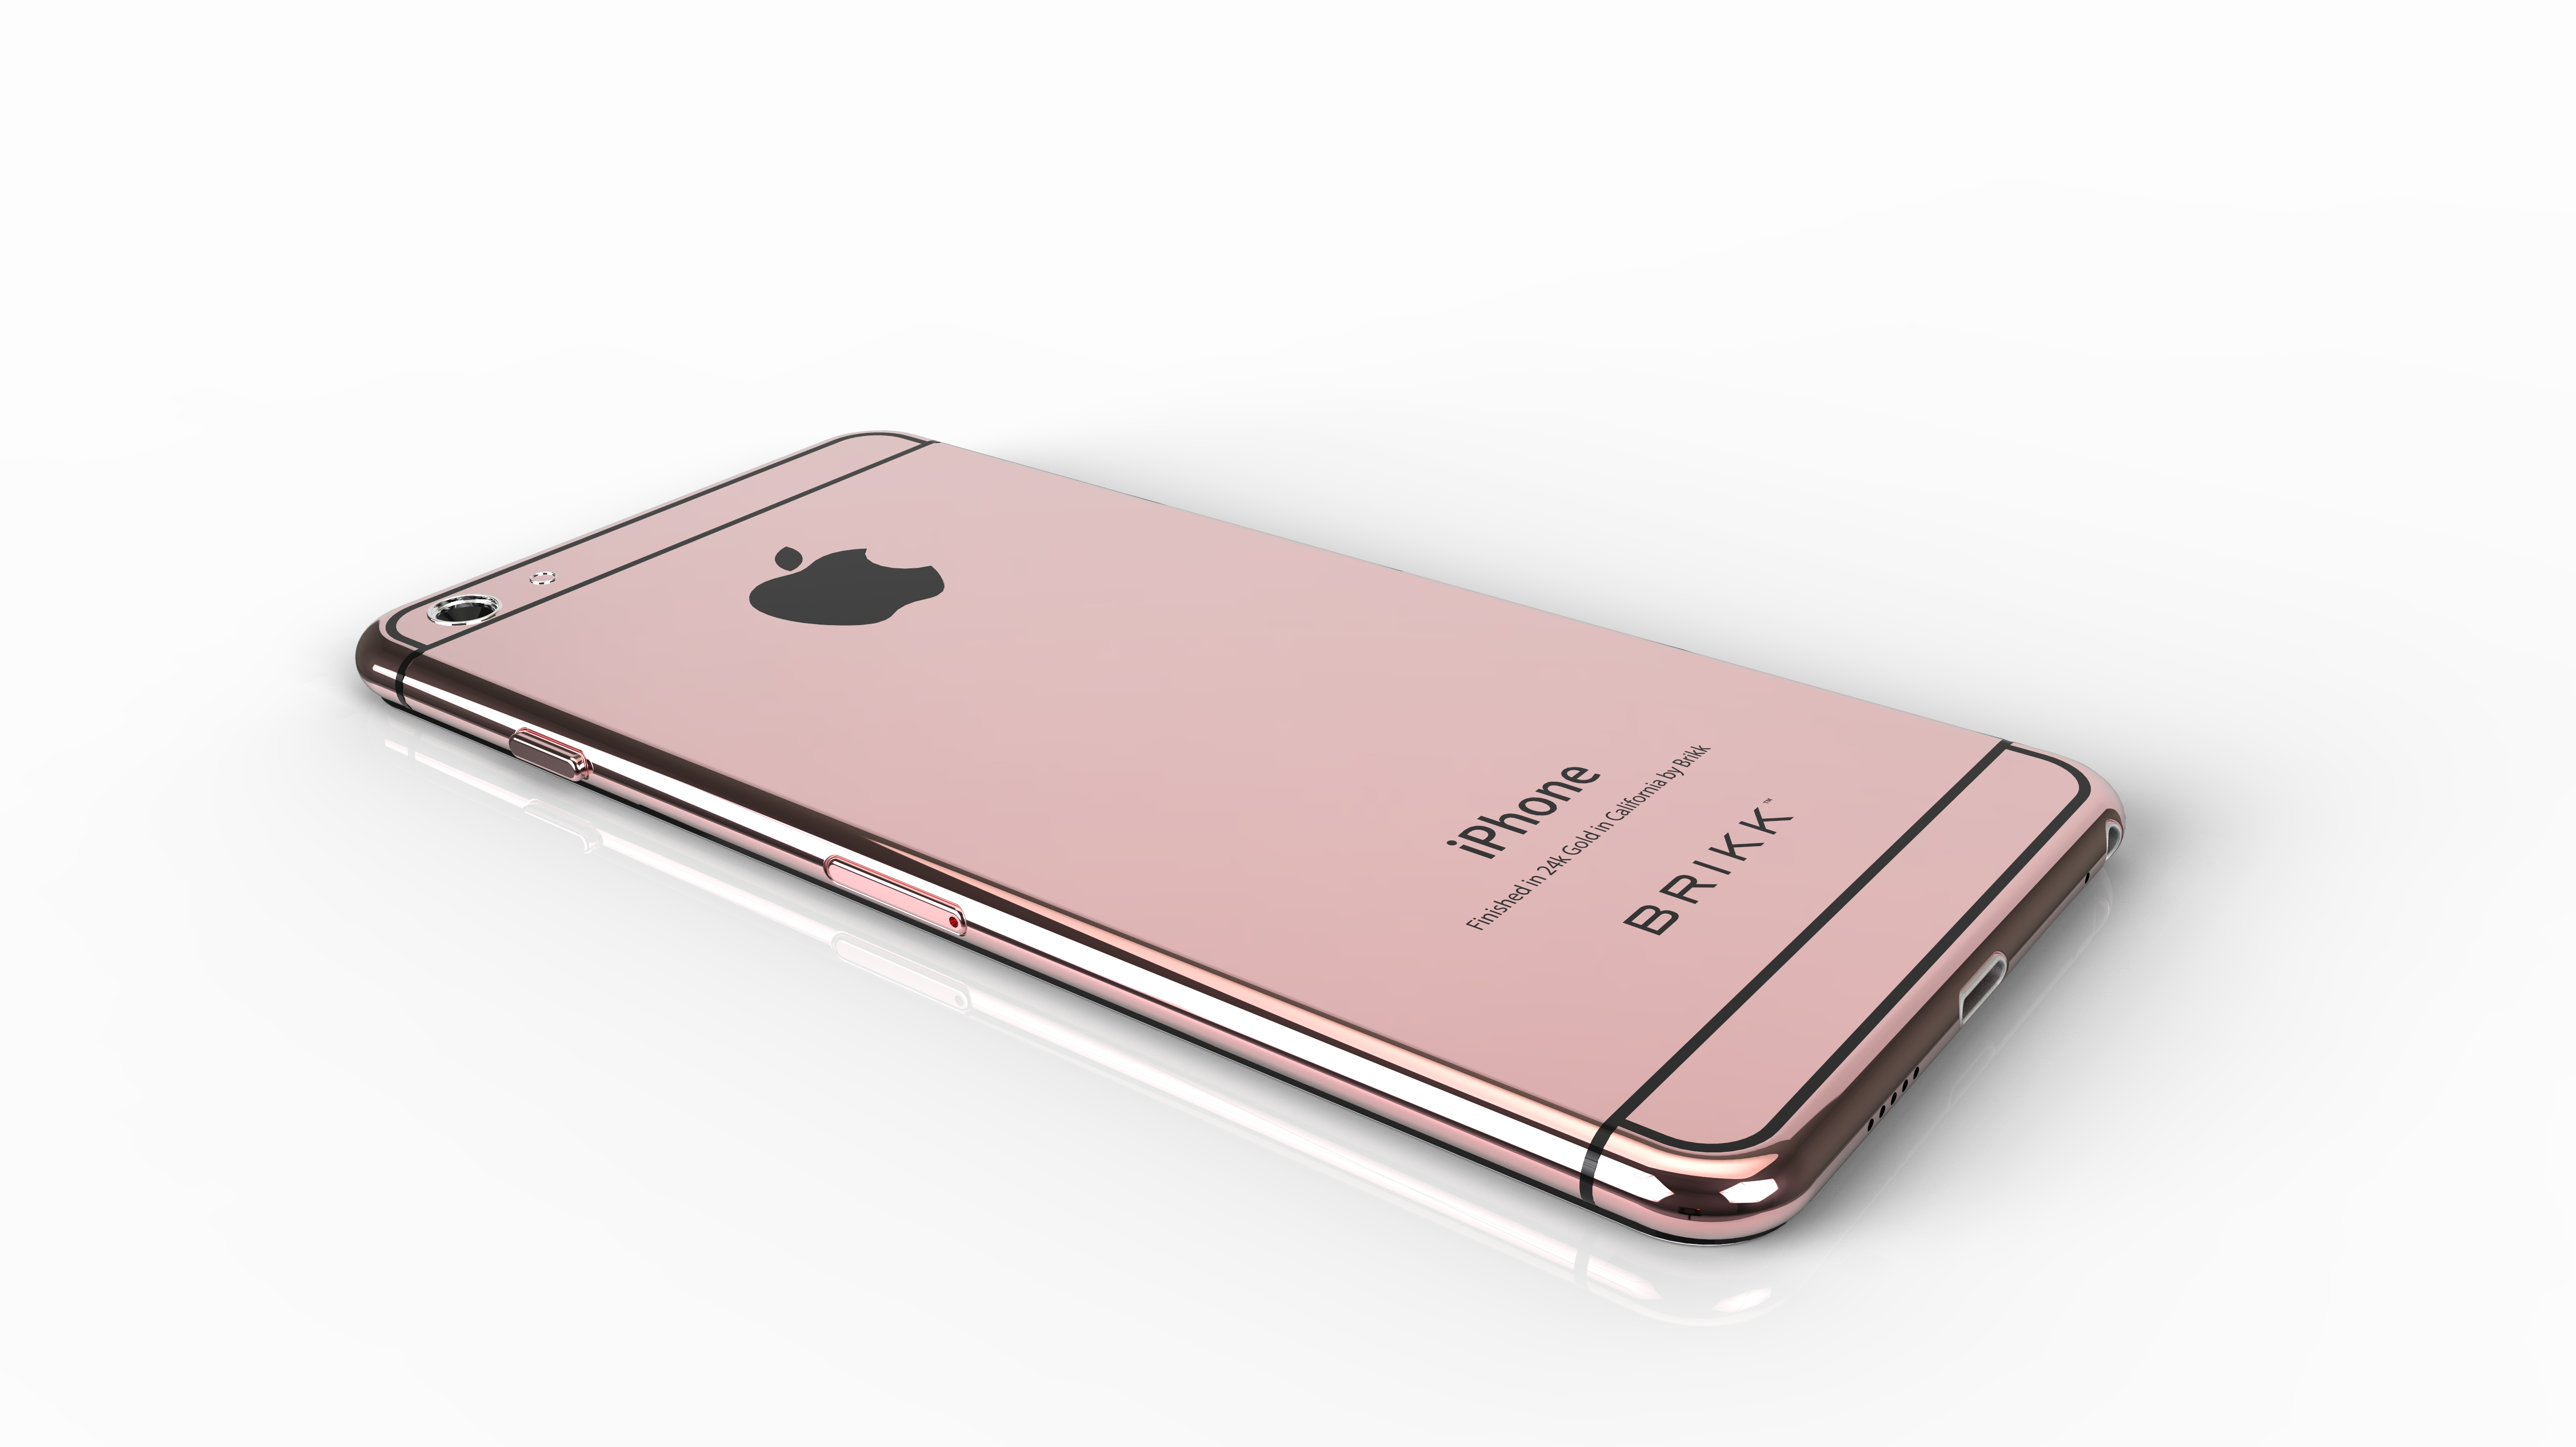 iphone pink gold brikk launches 5 5 inch version of iphone 6 in 24k gold 12135